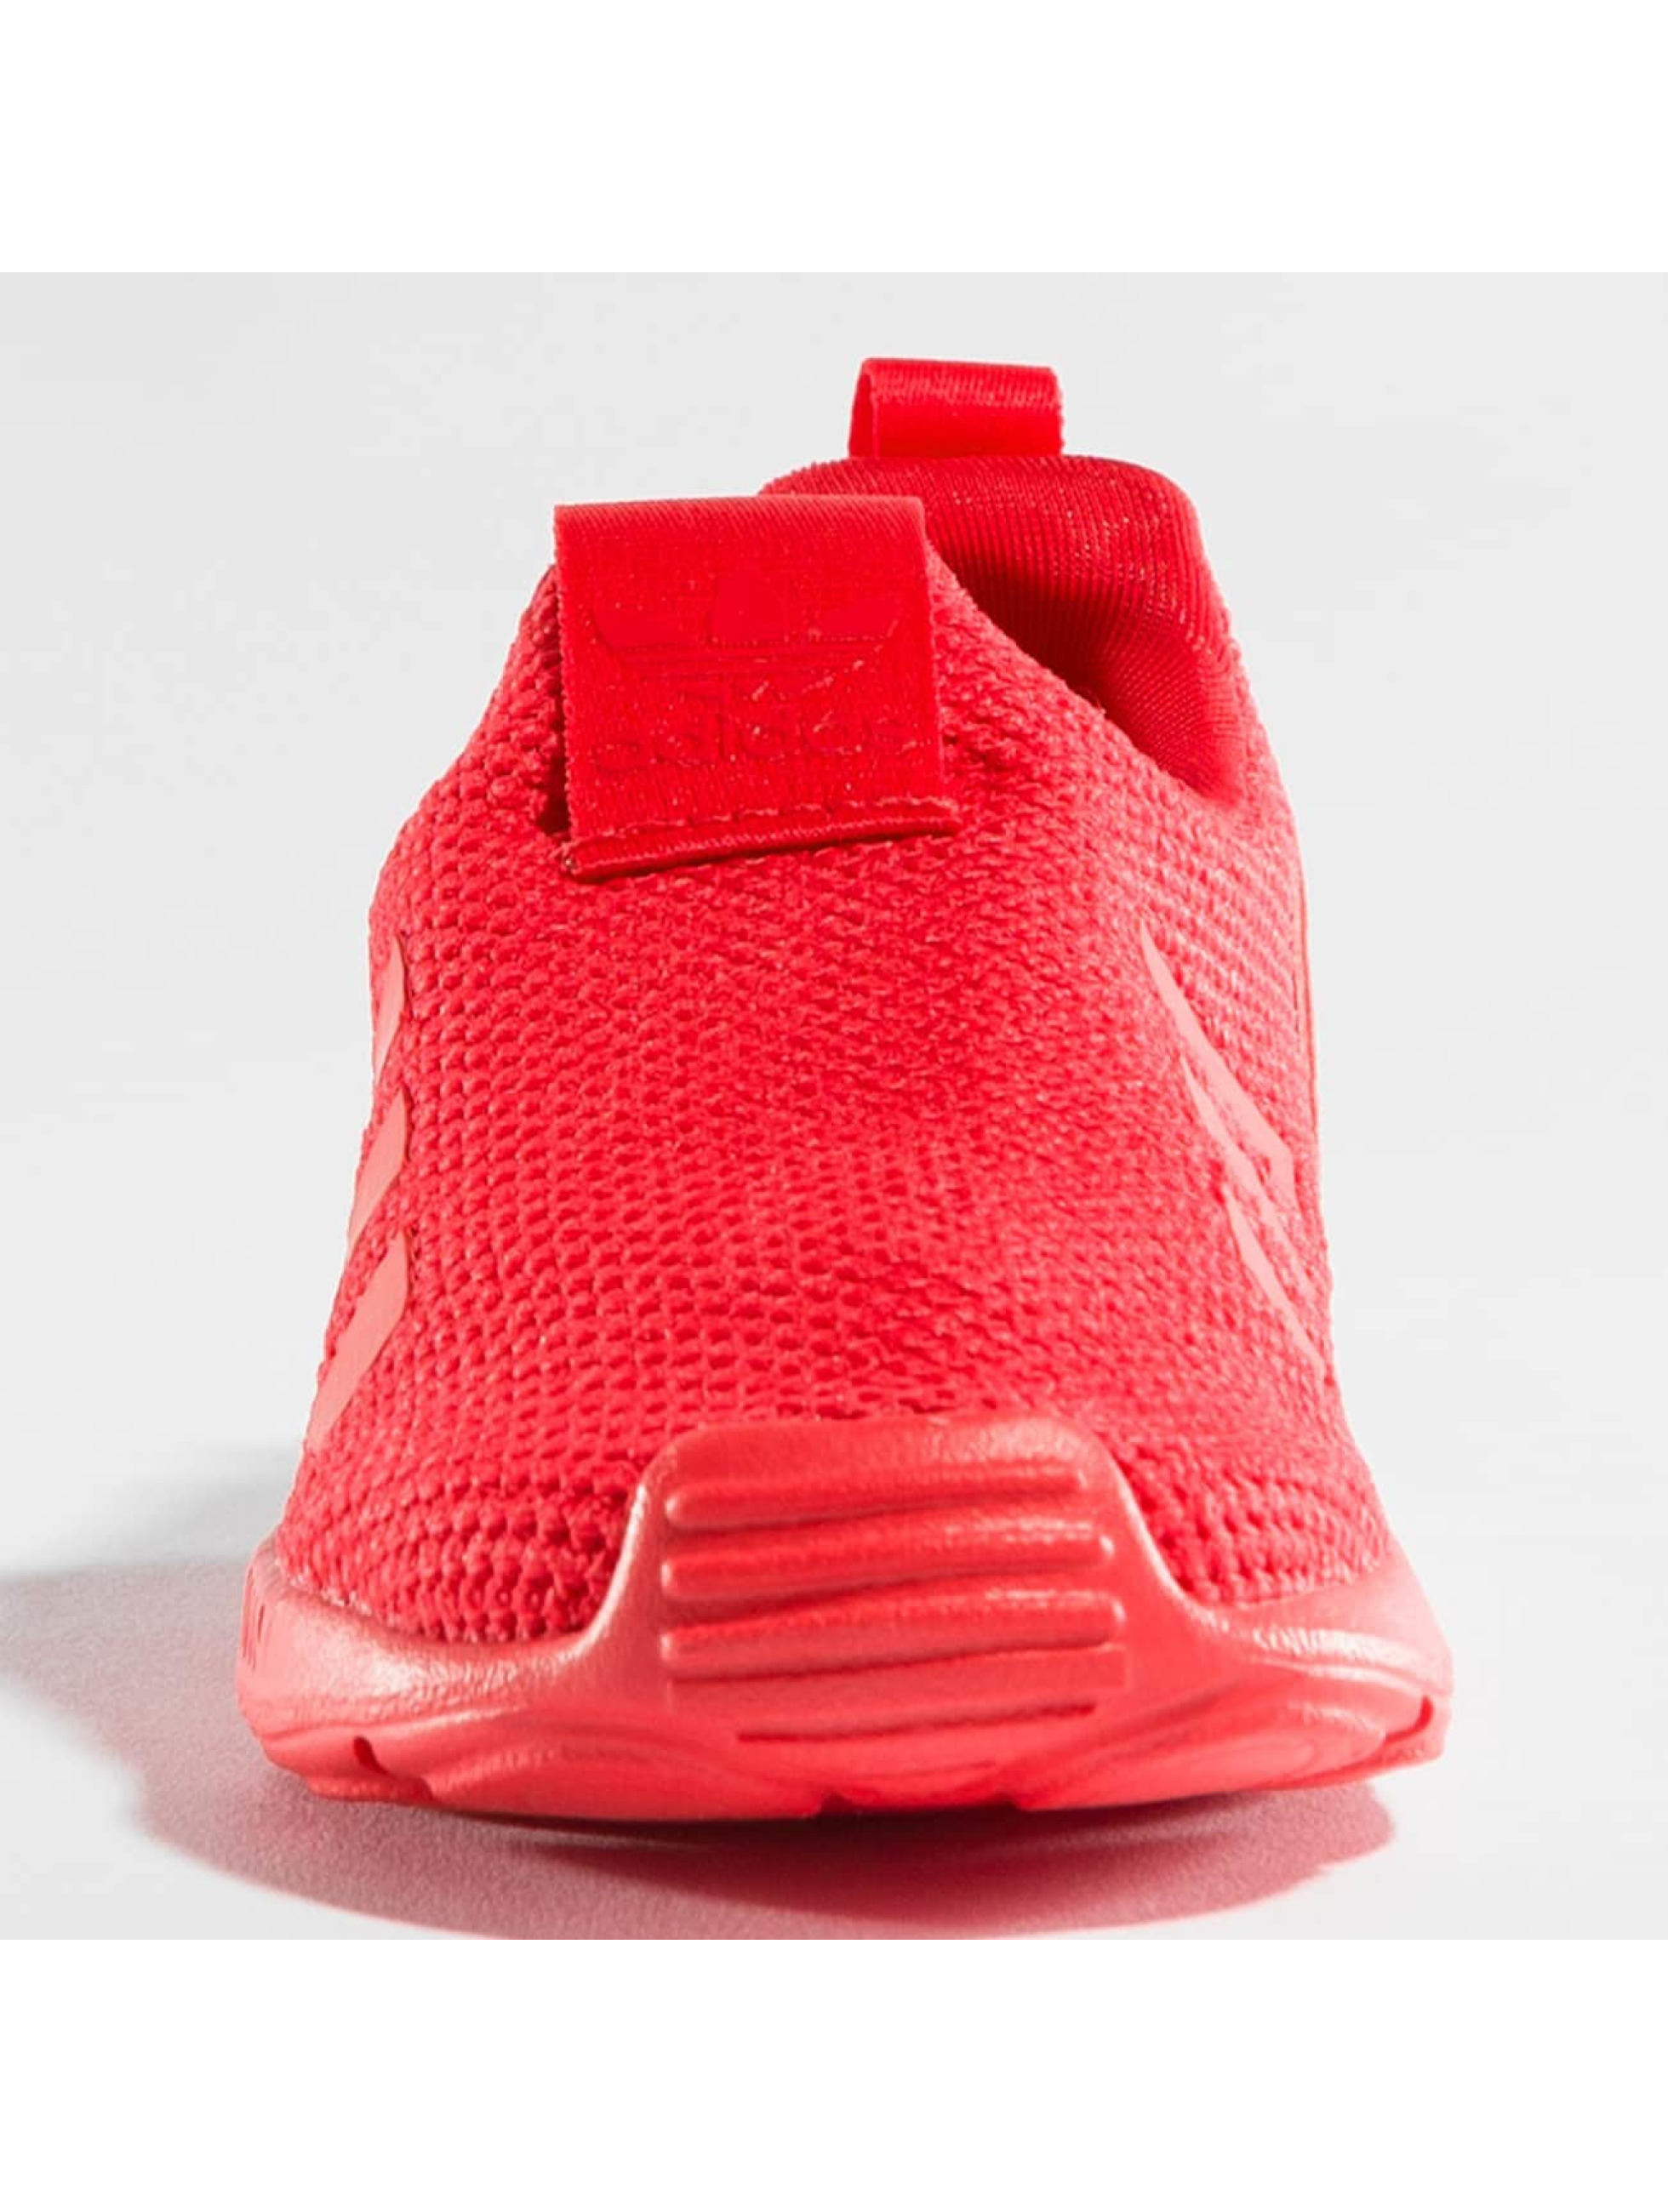 adidas Sneakers ZX Flux 360 SC I red